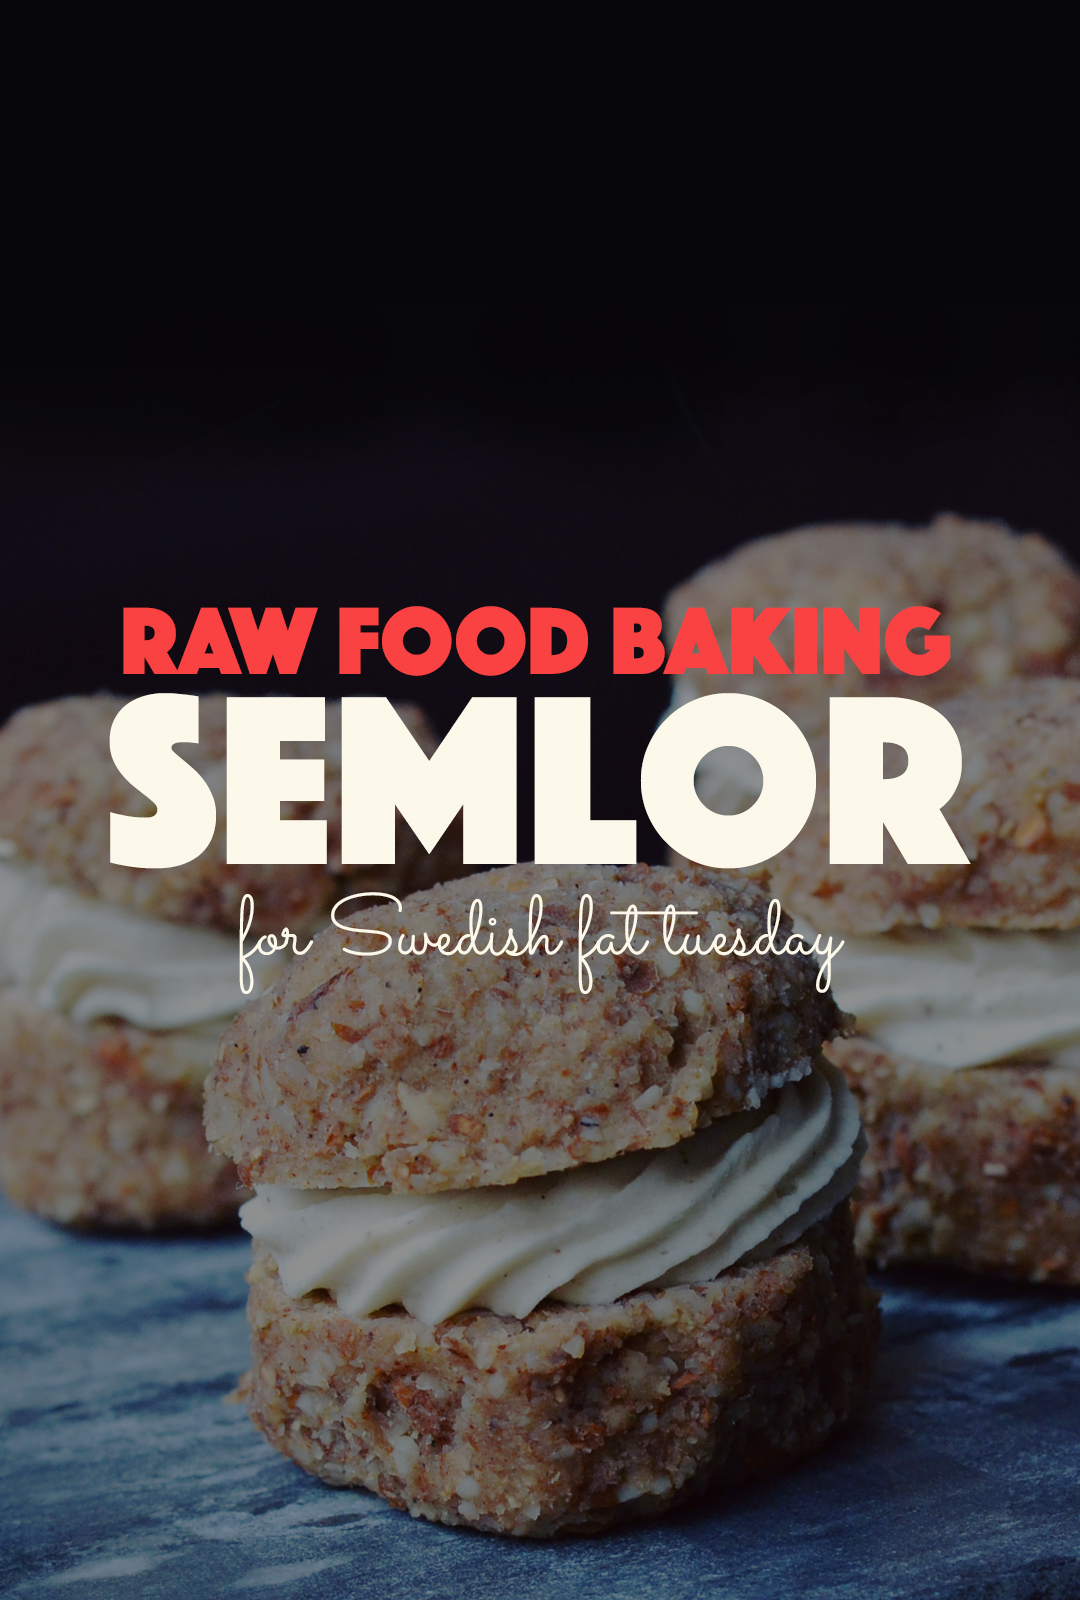 Raw Semlor for Swedish Fat Tuesday | http://BananaBloom.com #rawfood #rawbaking #semlor #raw #vegan #plantbased